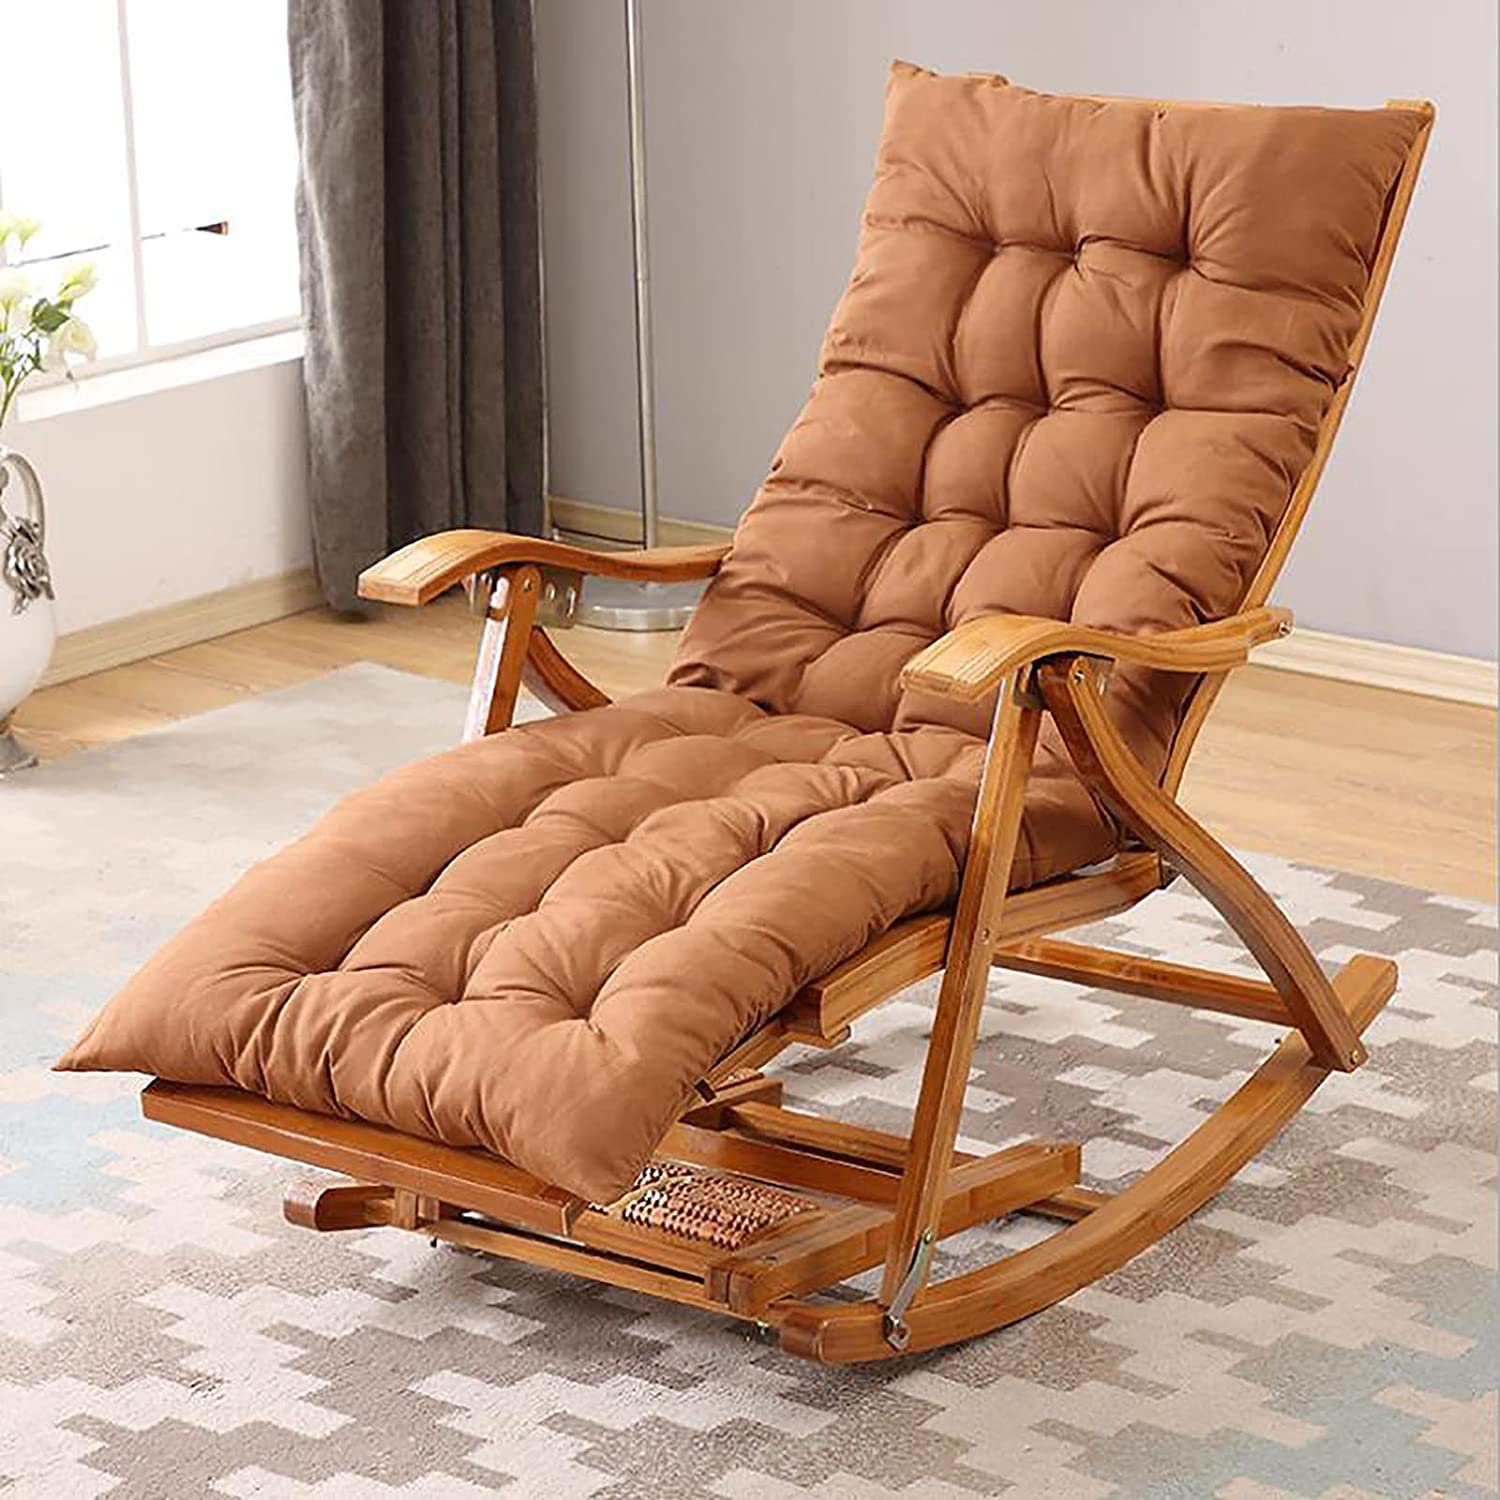 Sales of SALE items from new works Superior NqceKsrdfzn Rocking Chair Cushion Pad Lounger Sun